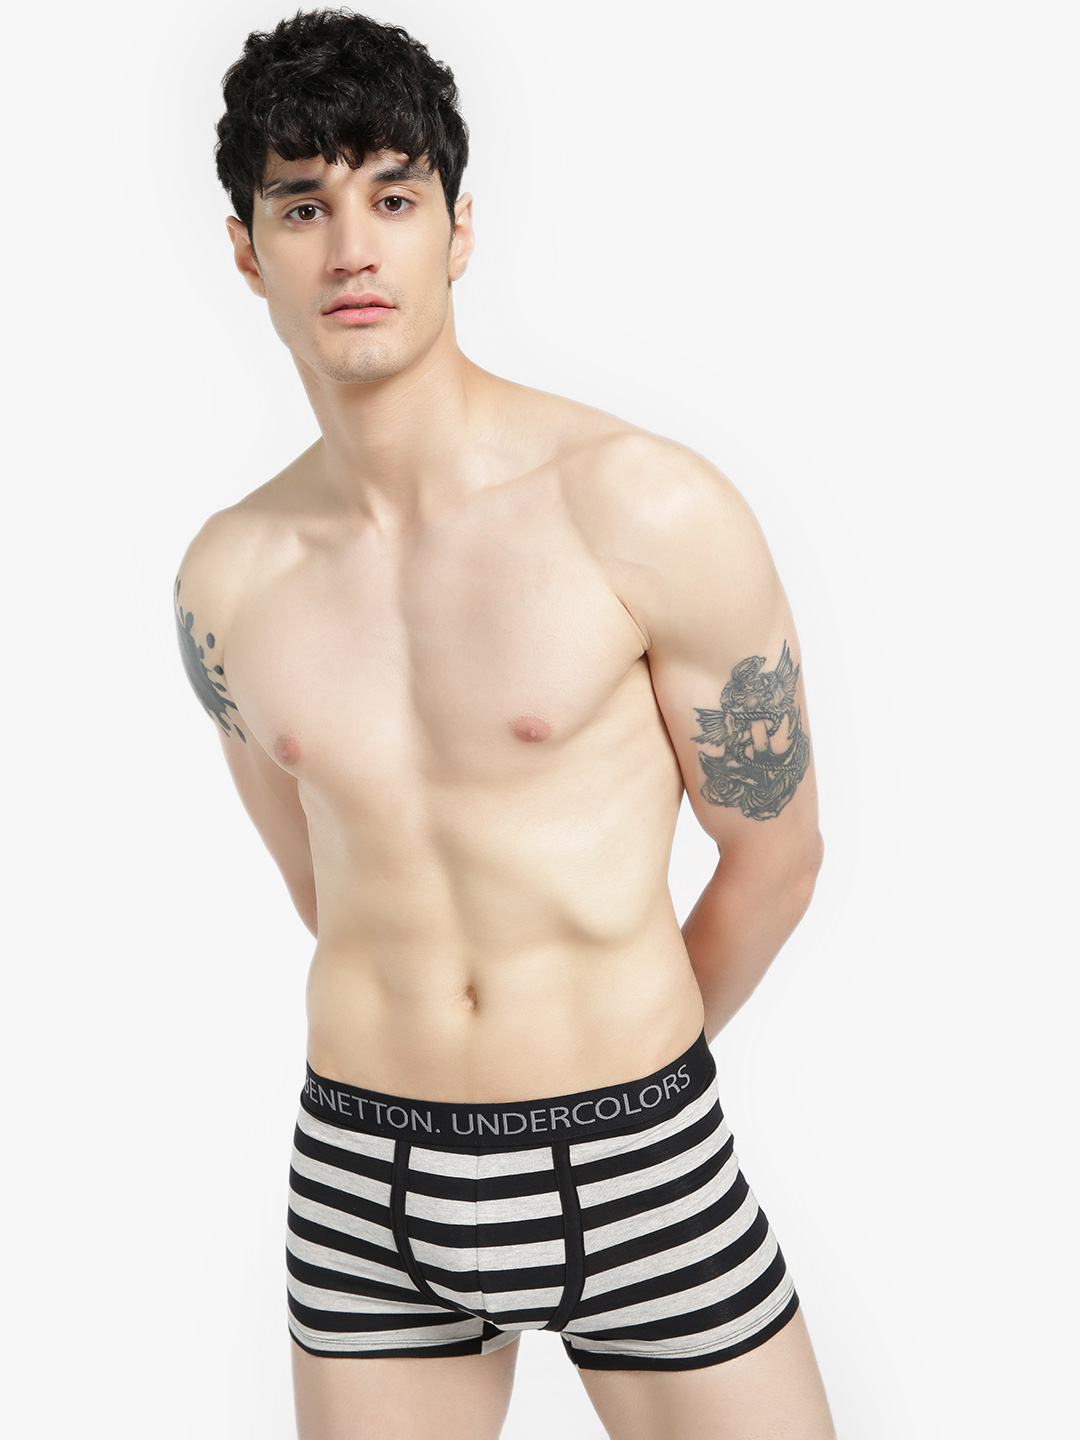 Under Colors of Benetton Grey/Black Logo Band Striped Trunks 1